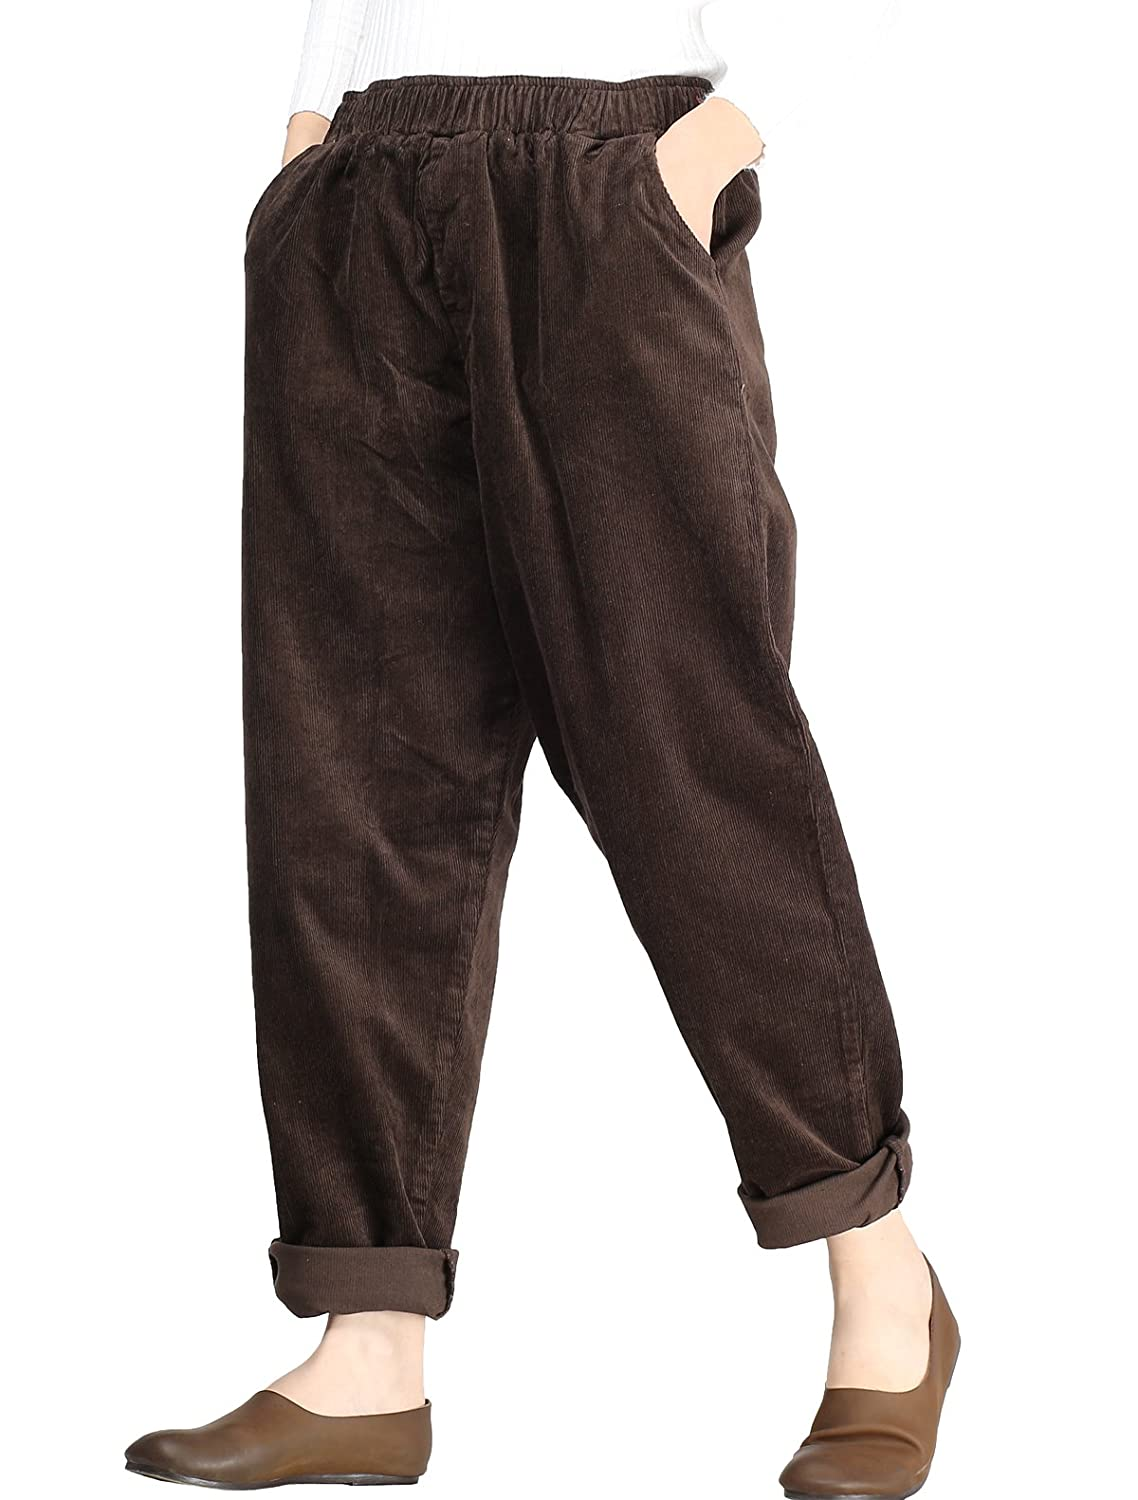 Mordenmiss Women's Fall/Winter Casual Corduroy Pants Pockets